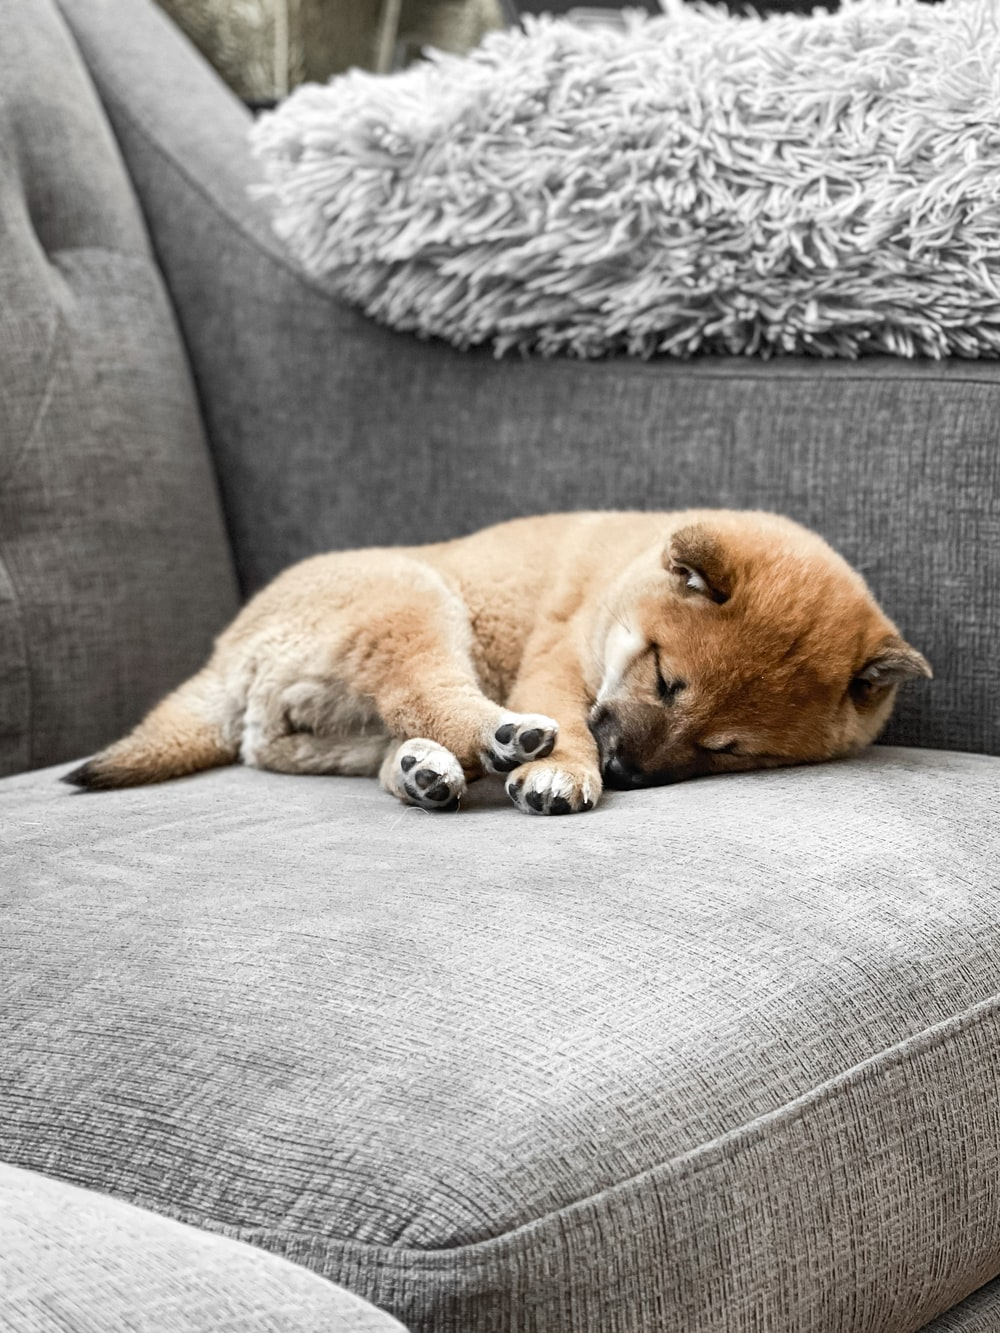 brown short coated dog lying on gray couch